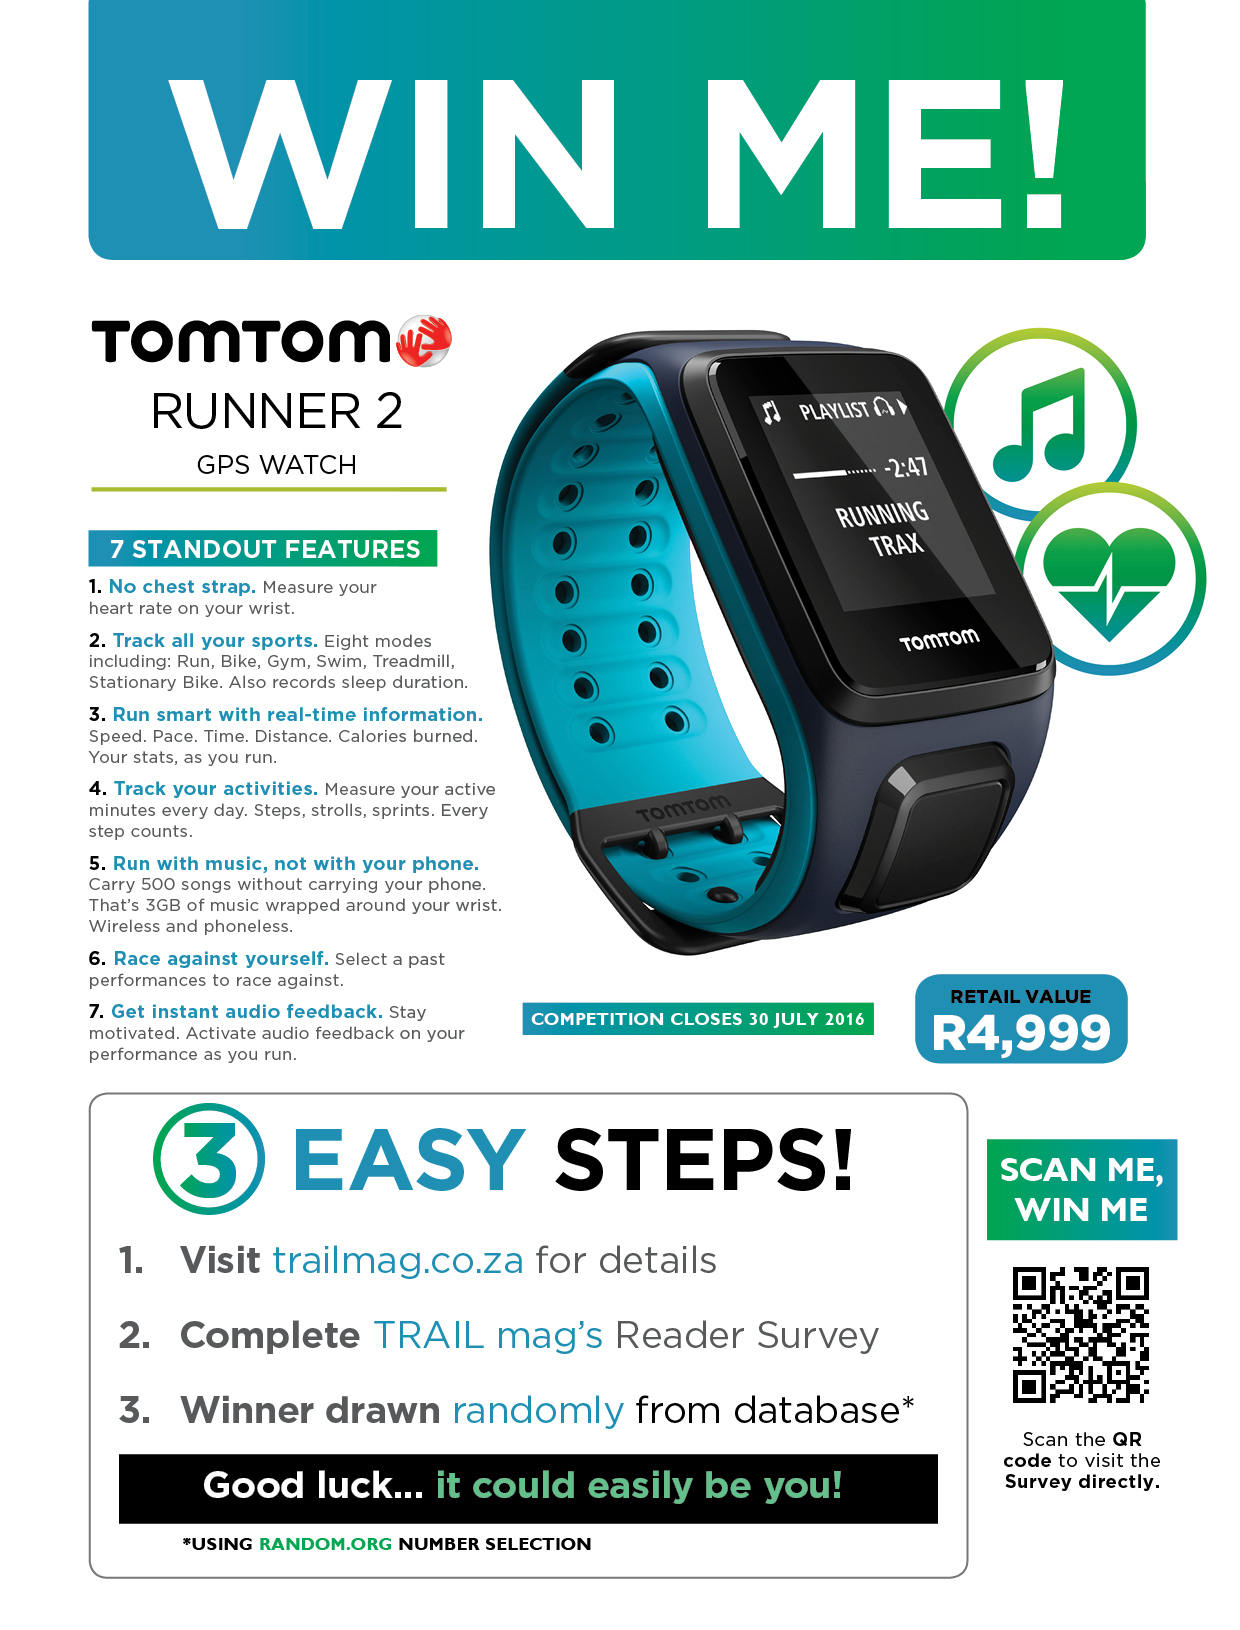 Tomtom runner 2 cardio reader survey competition fp ad t19 trail tomtom runner 2 cardio reader survey competition fp ad t19 publicscrutiny Images